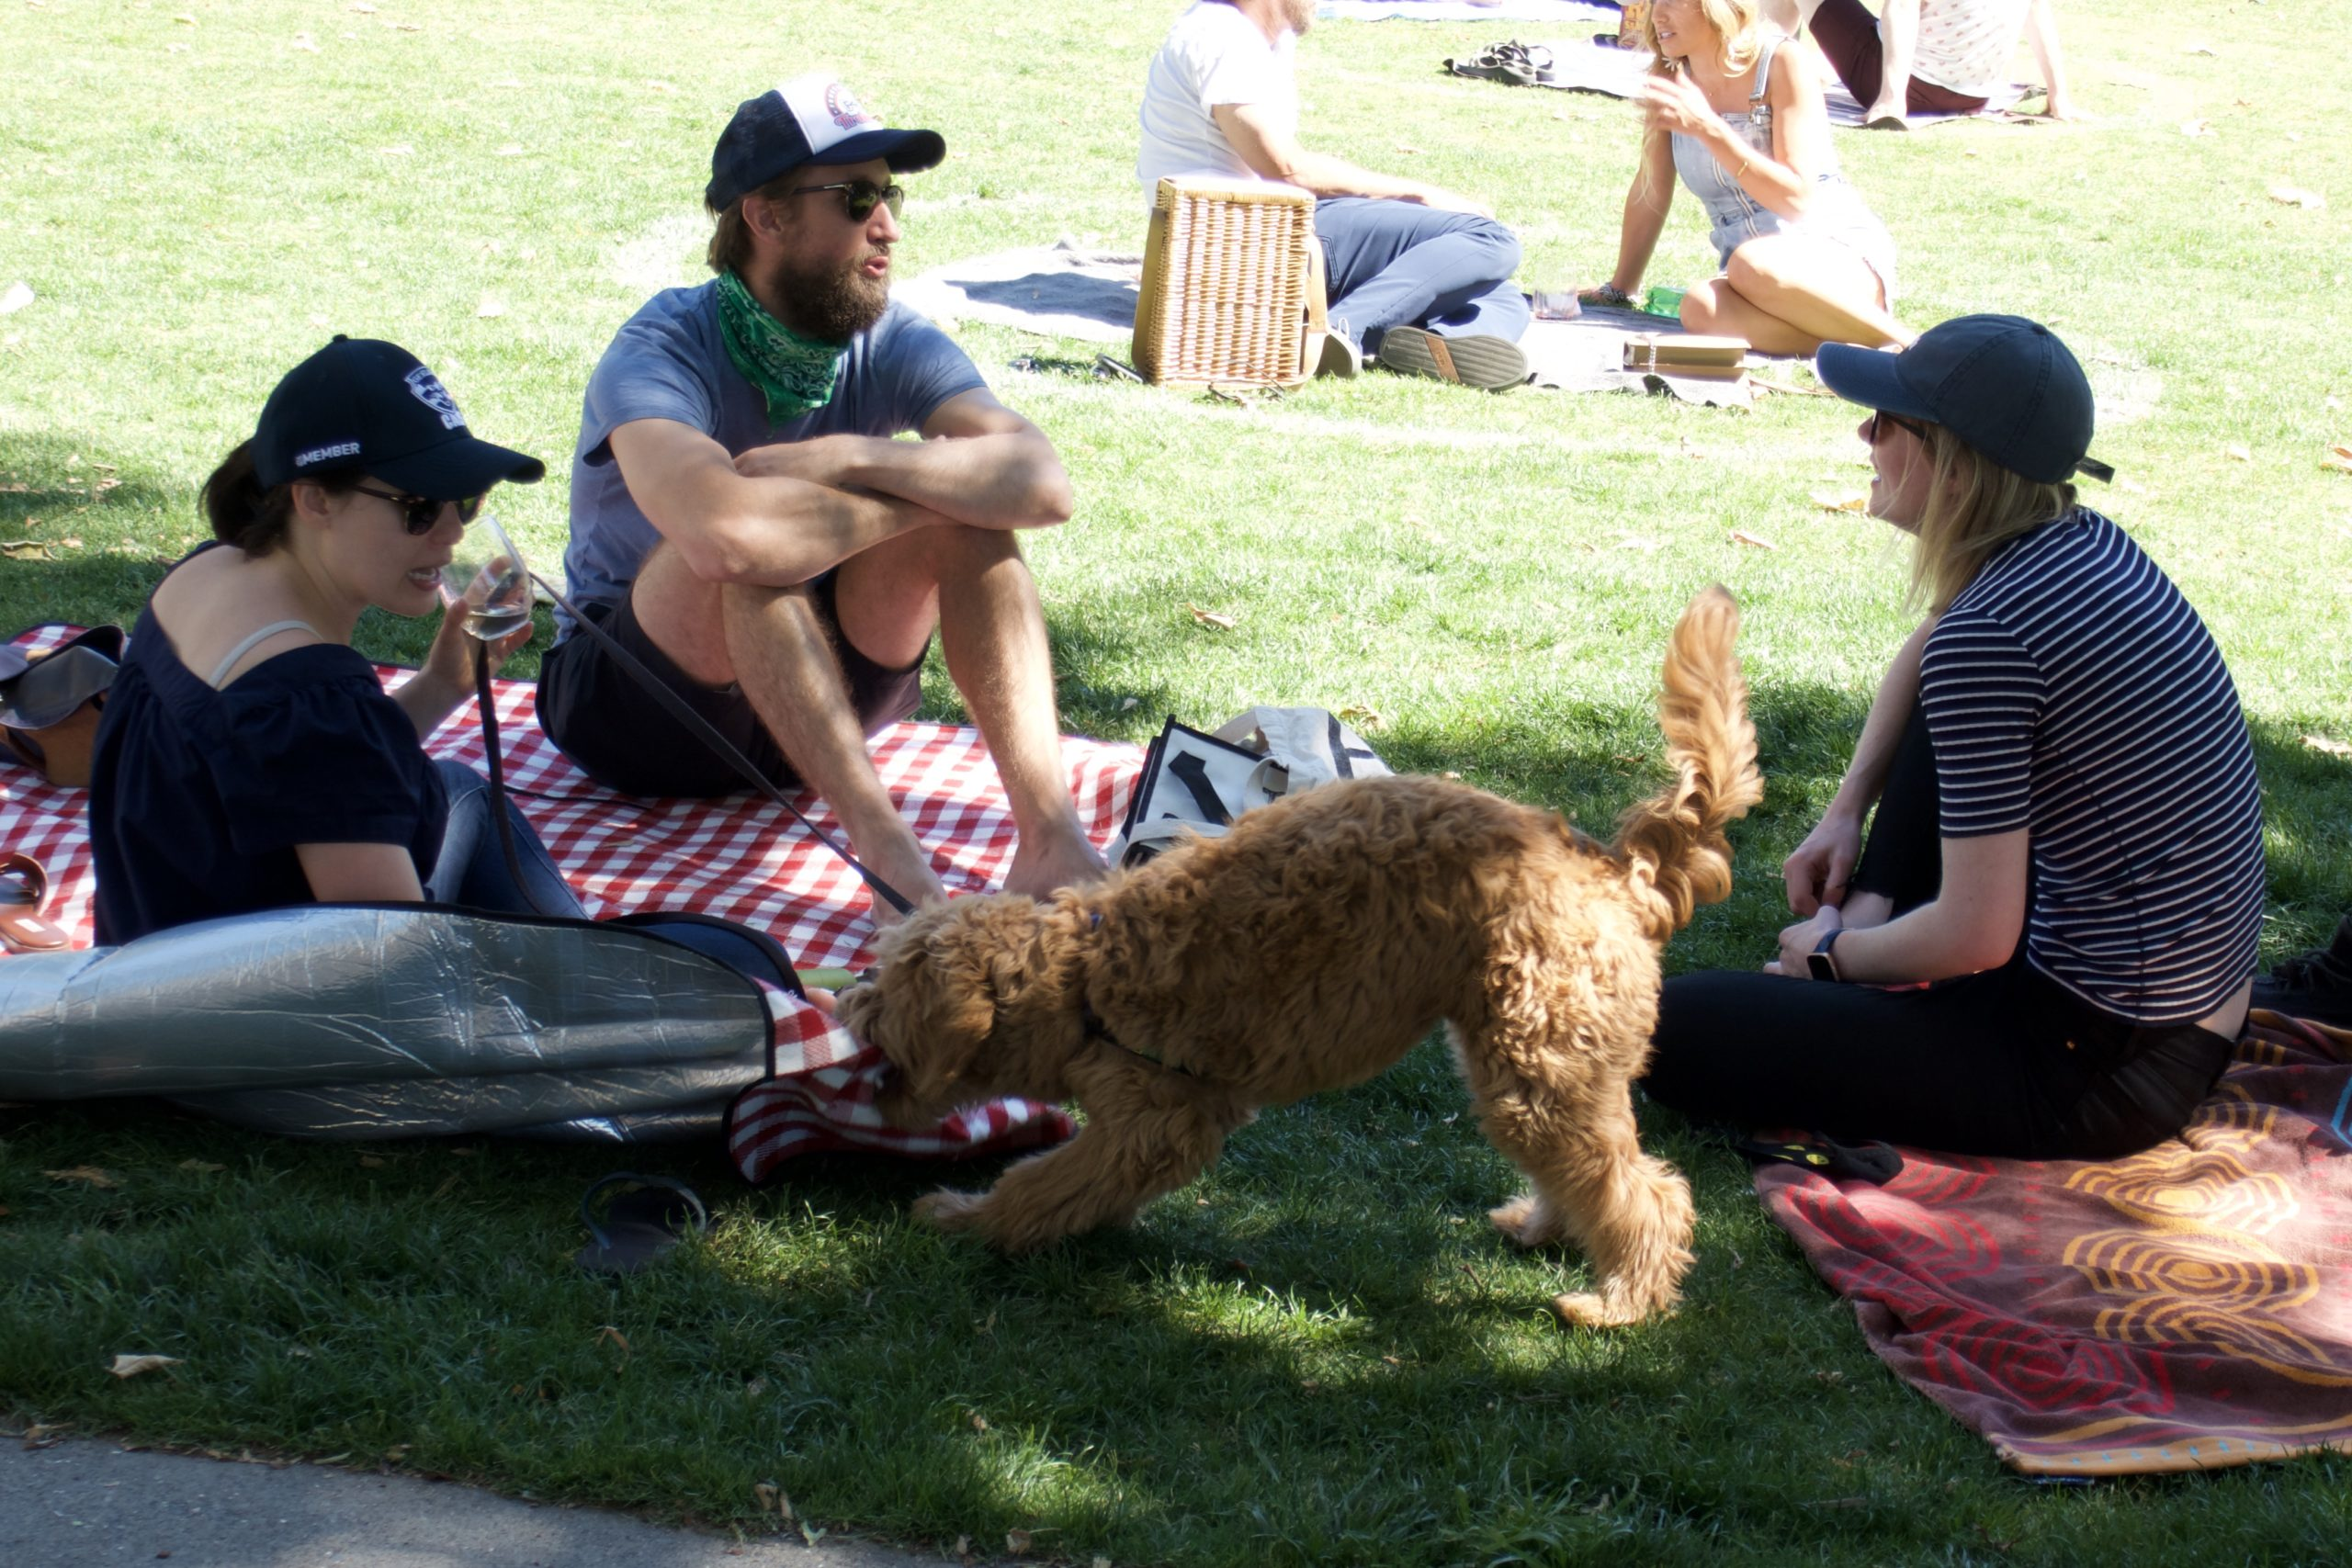 Goldendoodle Playing Tug Of War With A Picnic Blanket